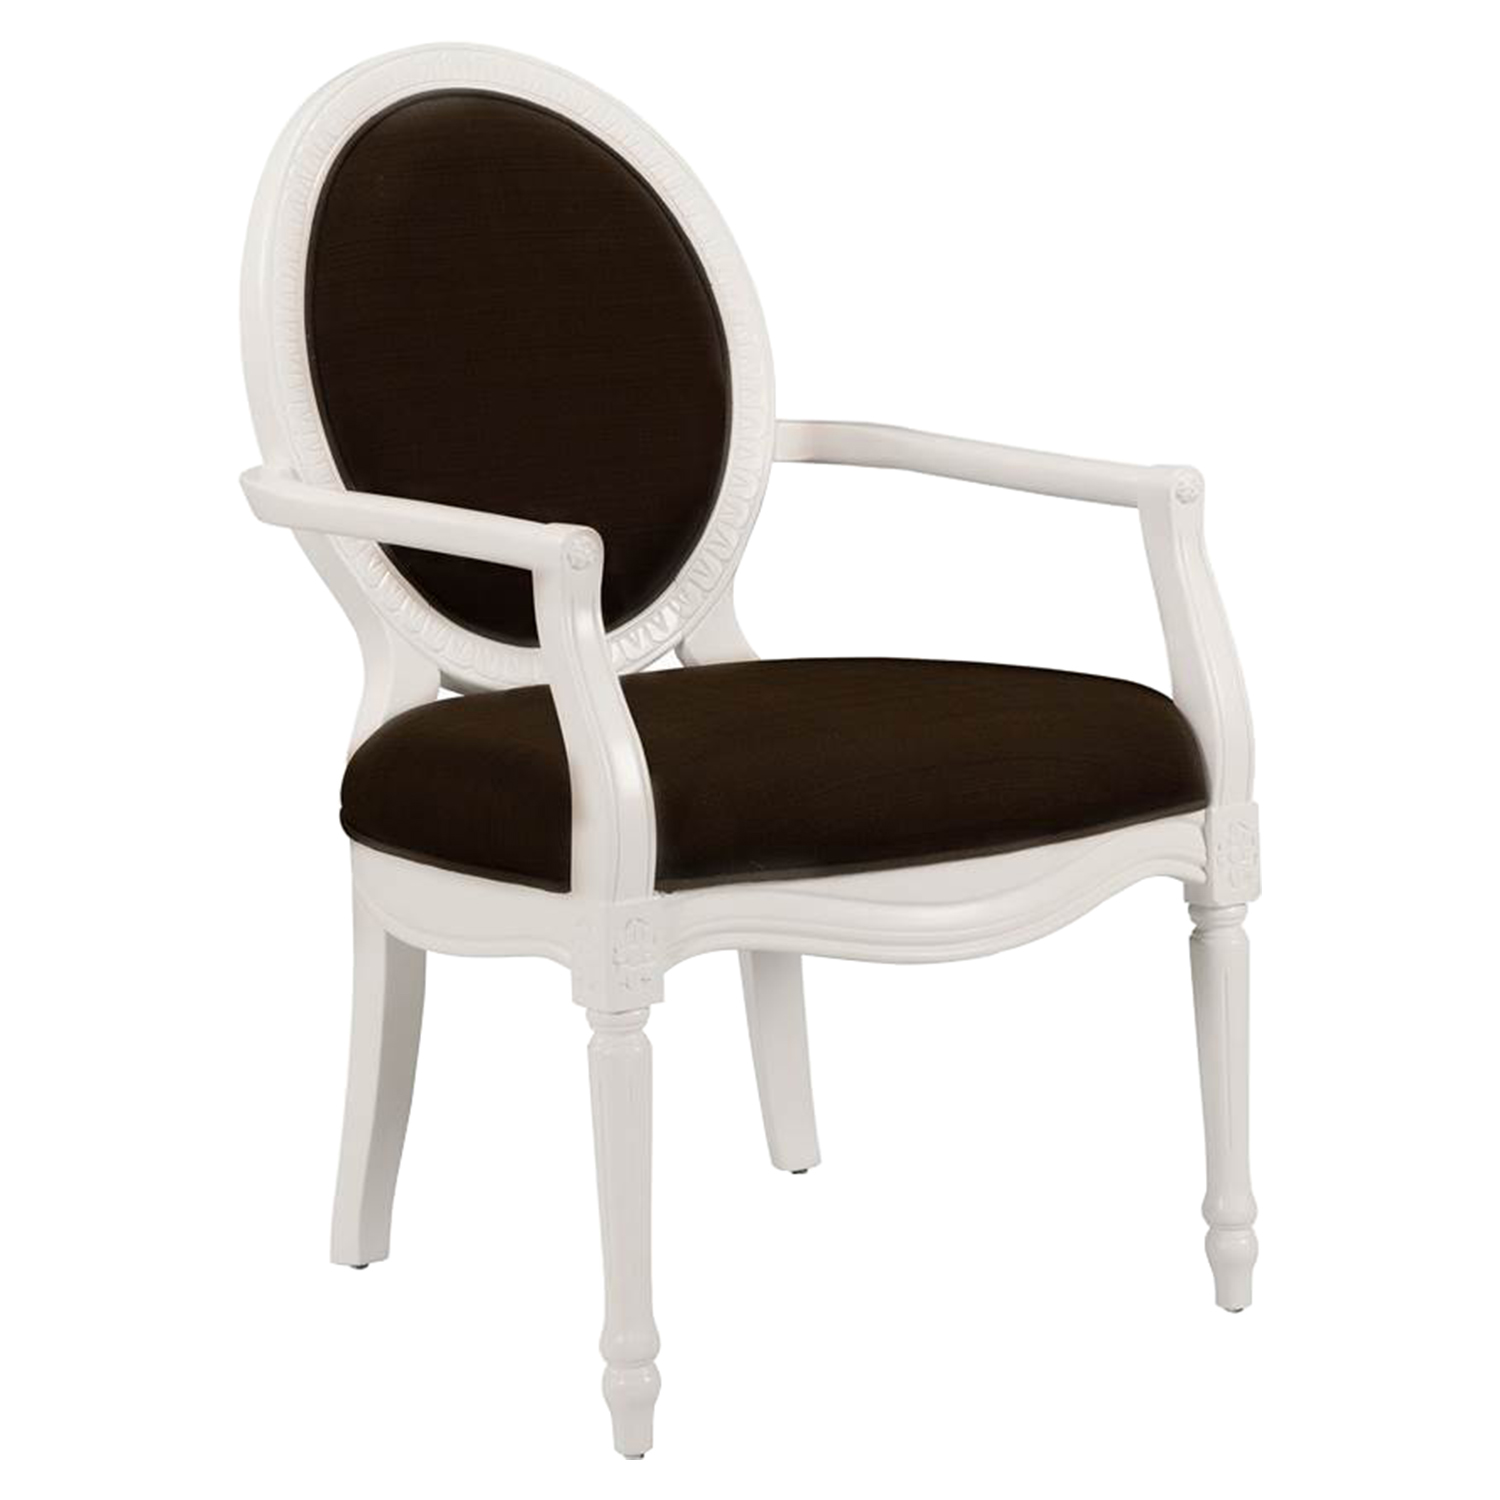 Madison Accent Chair - Truffle, White